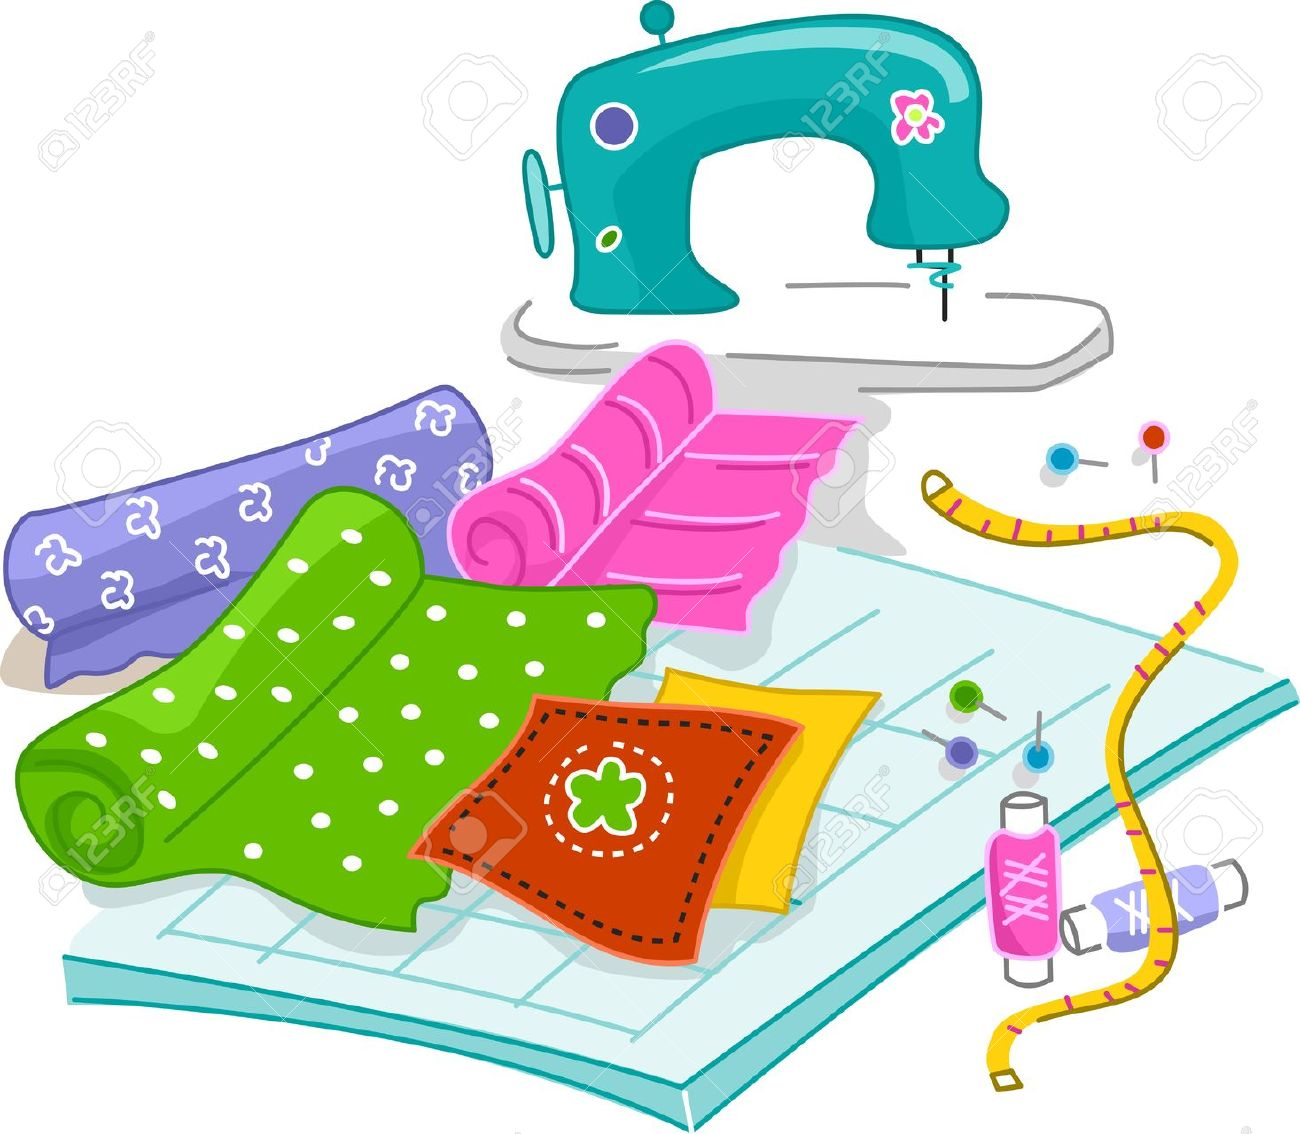 Image result for royalty free images of quilting